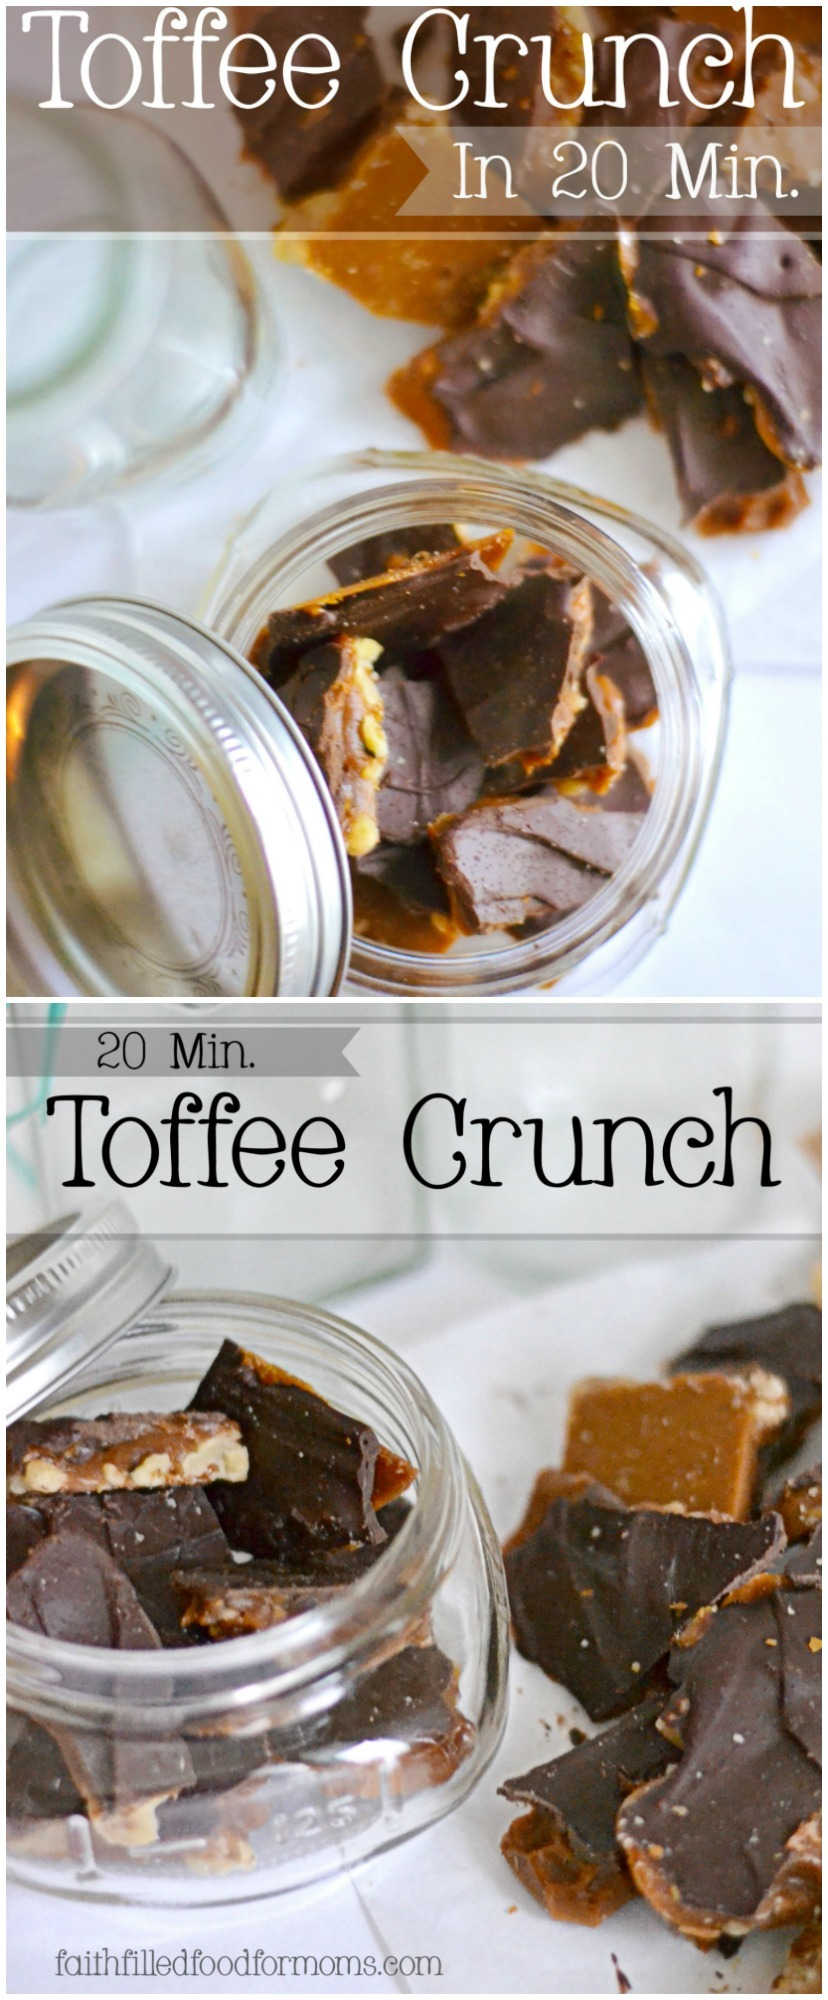 Homemade Toffee Crunch is a great first time candy making experience! Always turns out delish and makes a great gift!